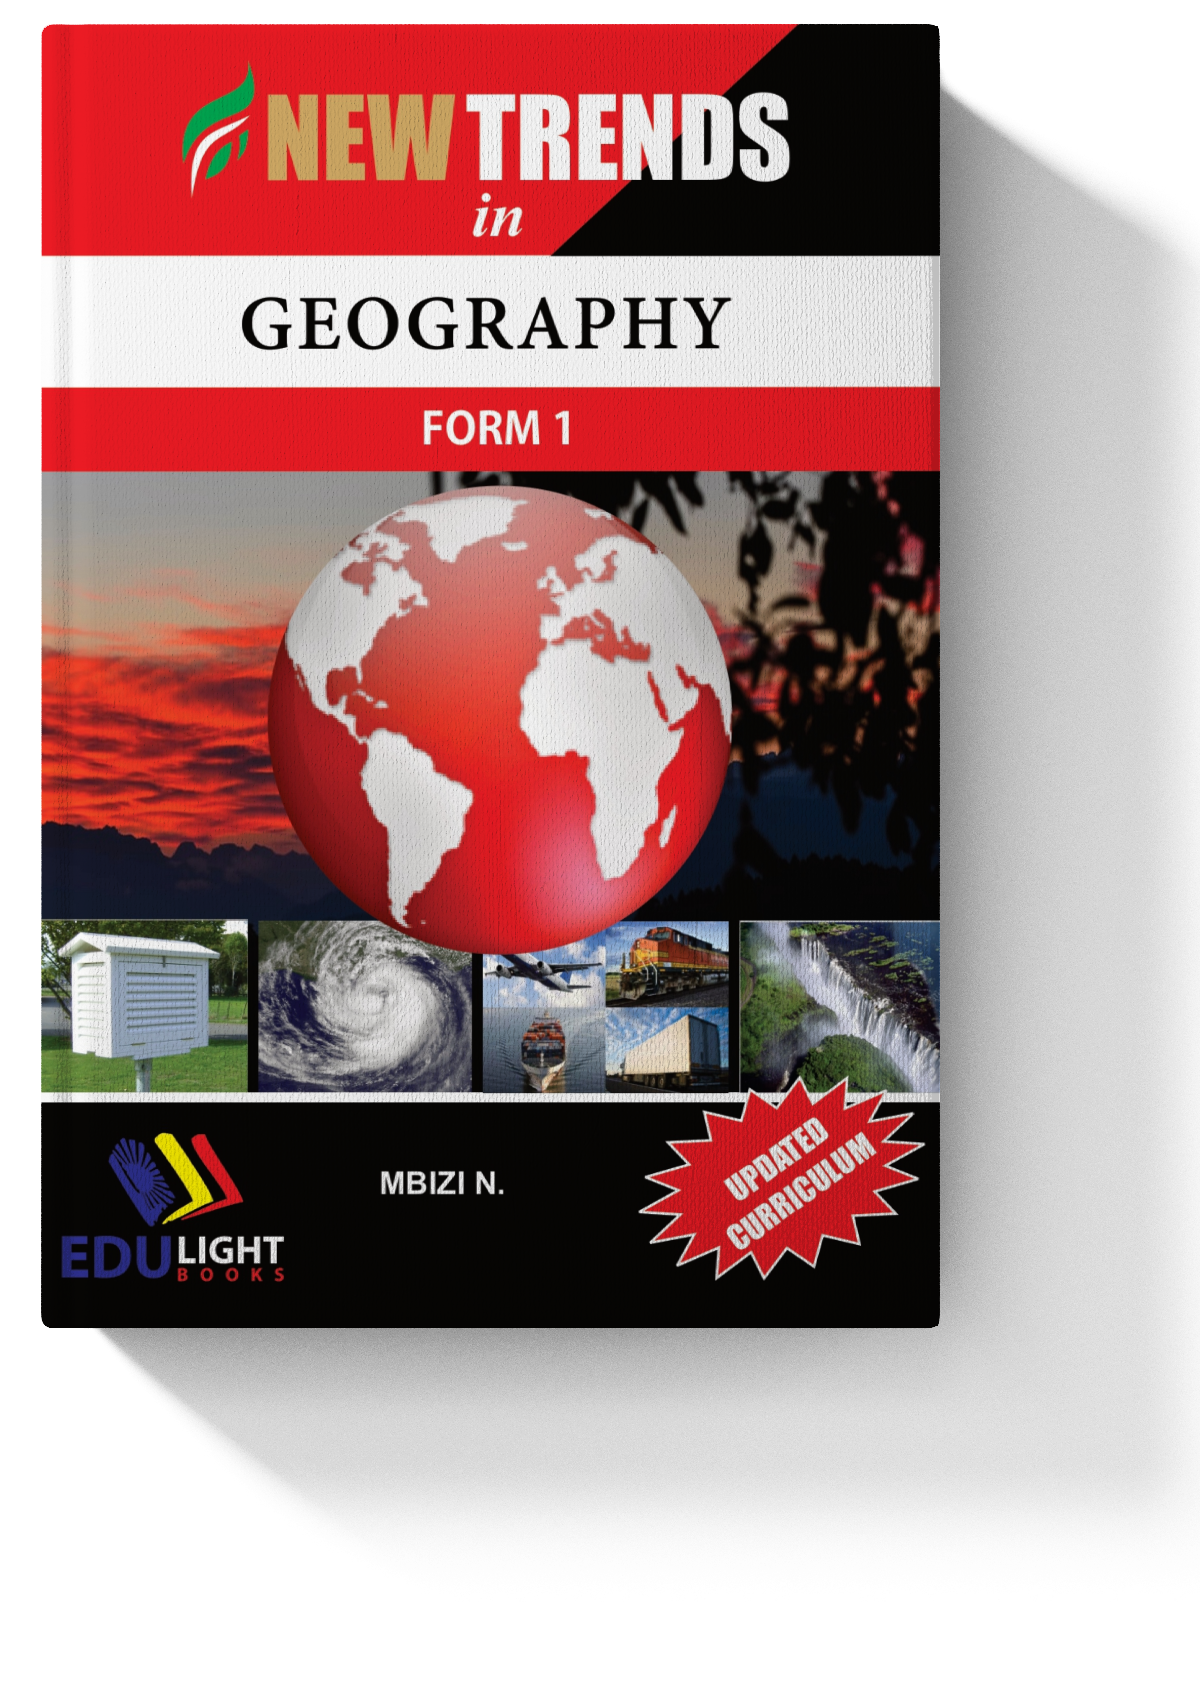 New Trends in Geography Form 1